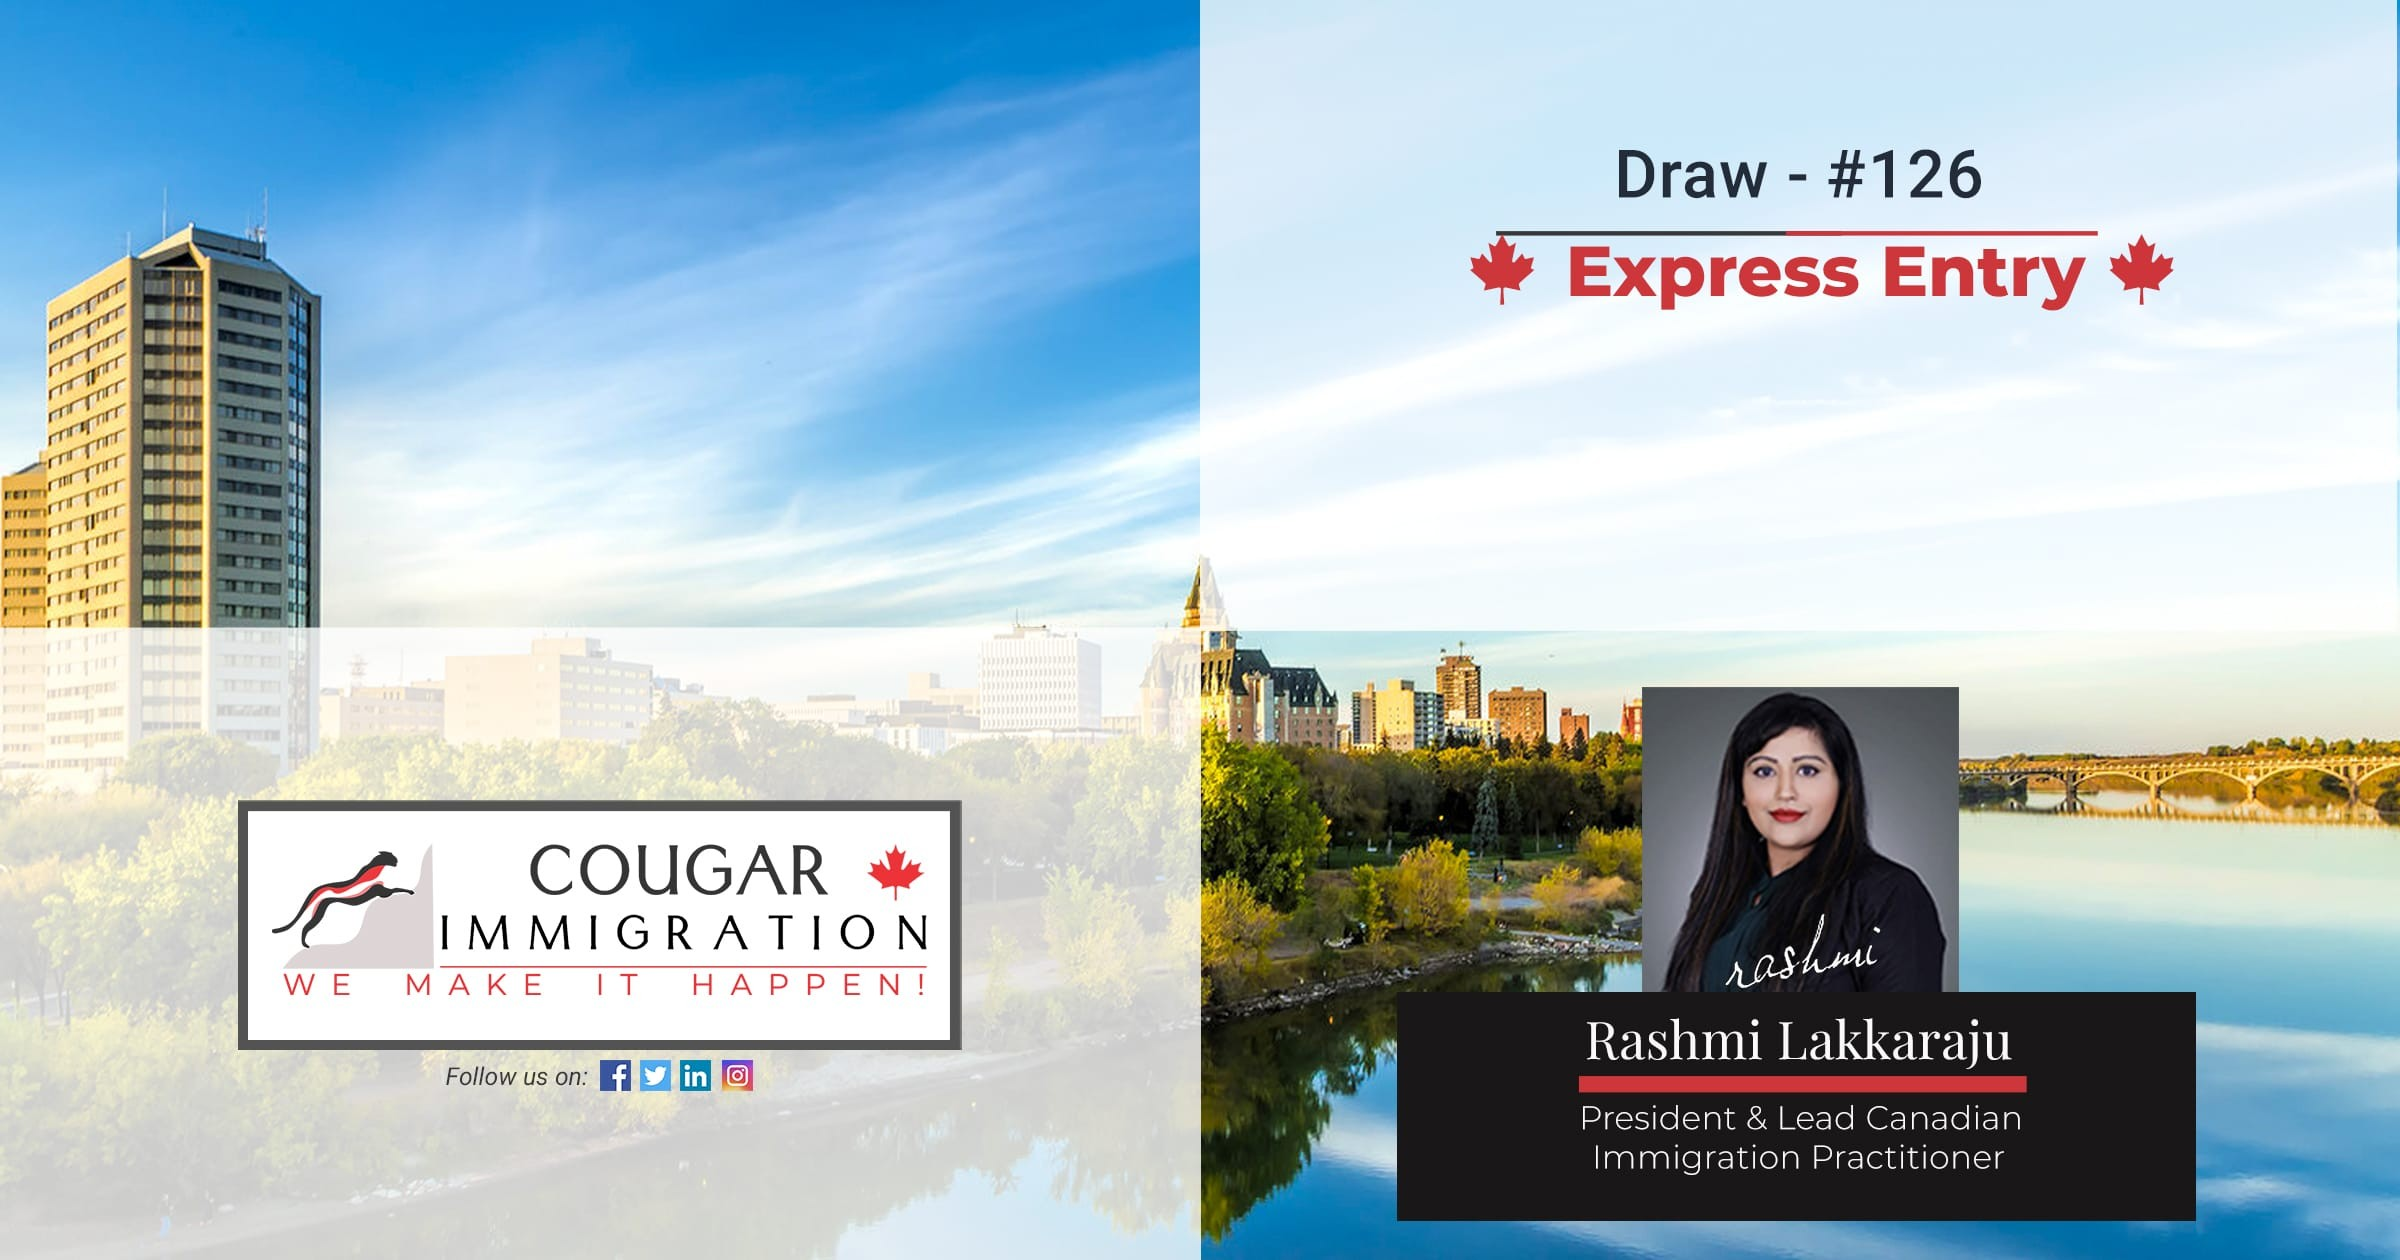 Express Entry draw issues 3,600 invitations to apply for Canadian permanent residence on September 18 '19 thumbnail